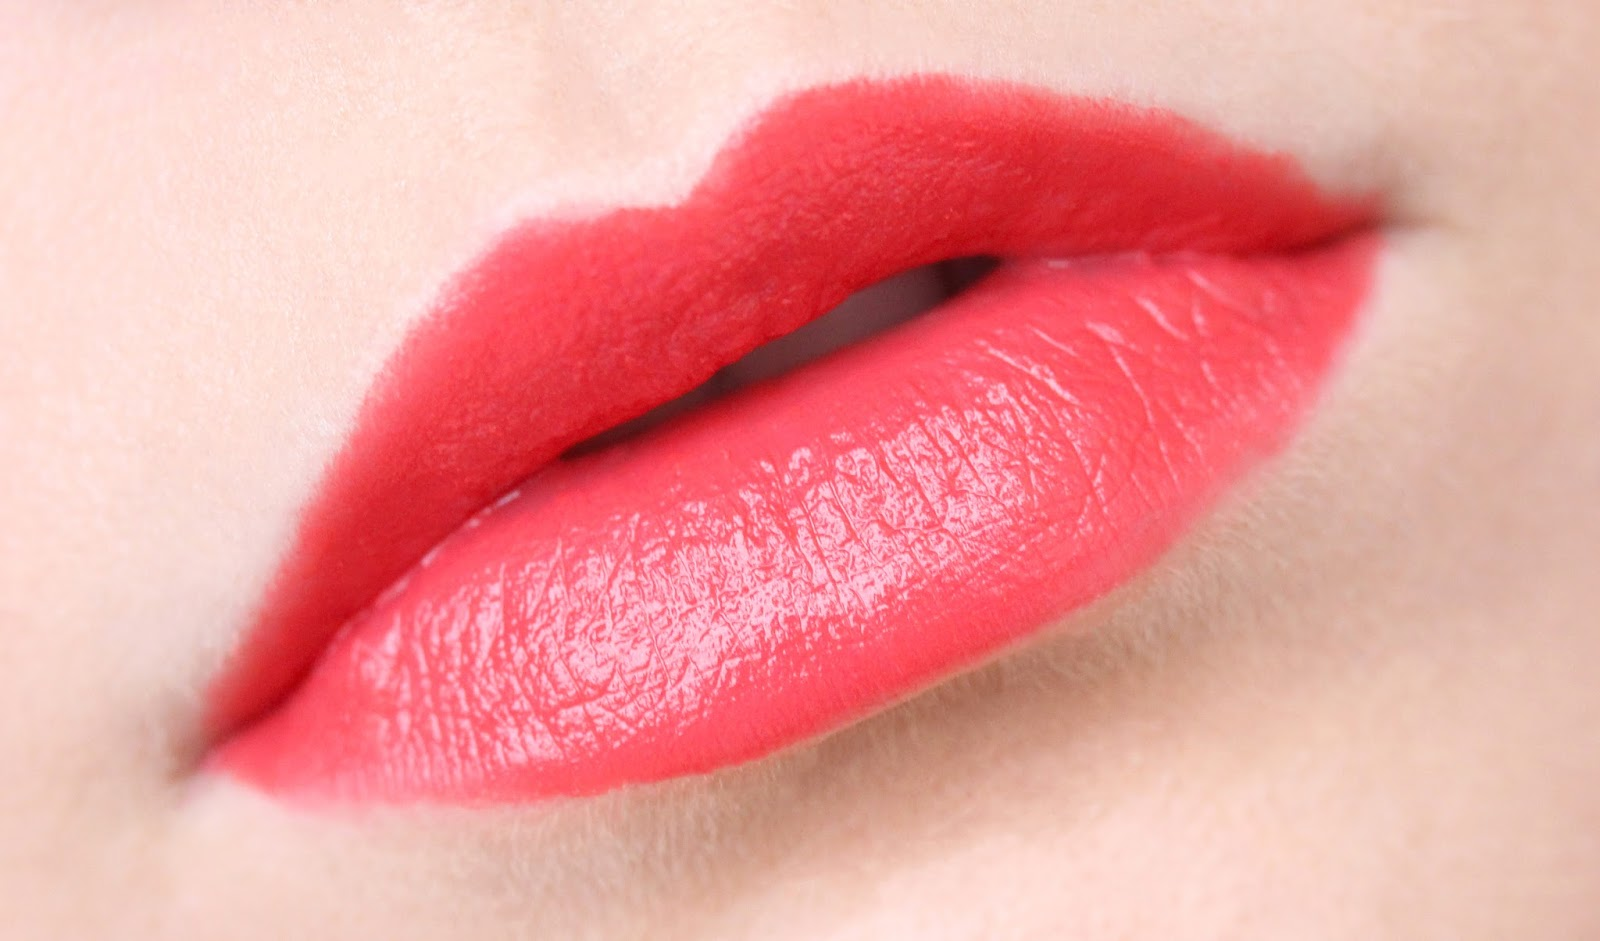 Rimmel Kate Lasting Finish Matte Lipstick in 110 Review